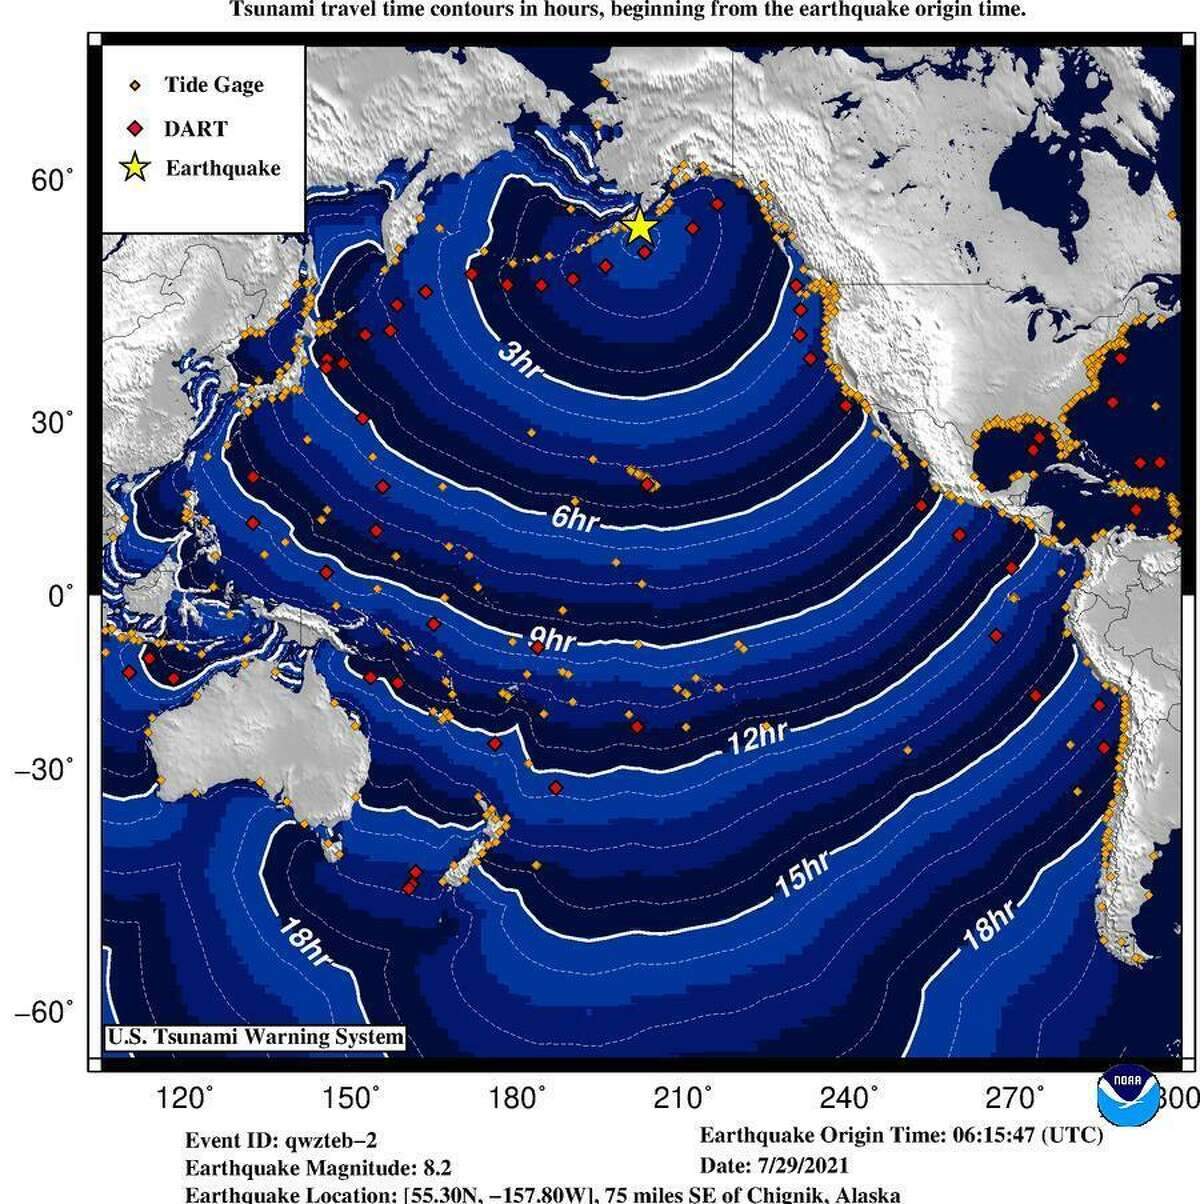 A National Weather Service map showing the rippling waves emanating from an 8.2-magnitude earthquake near Alaska.